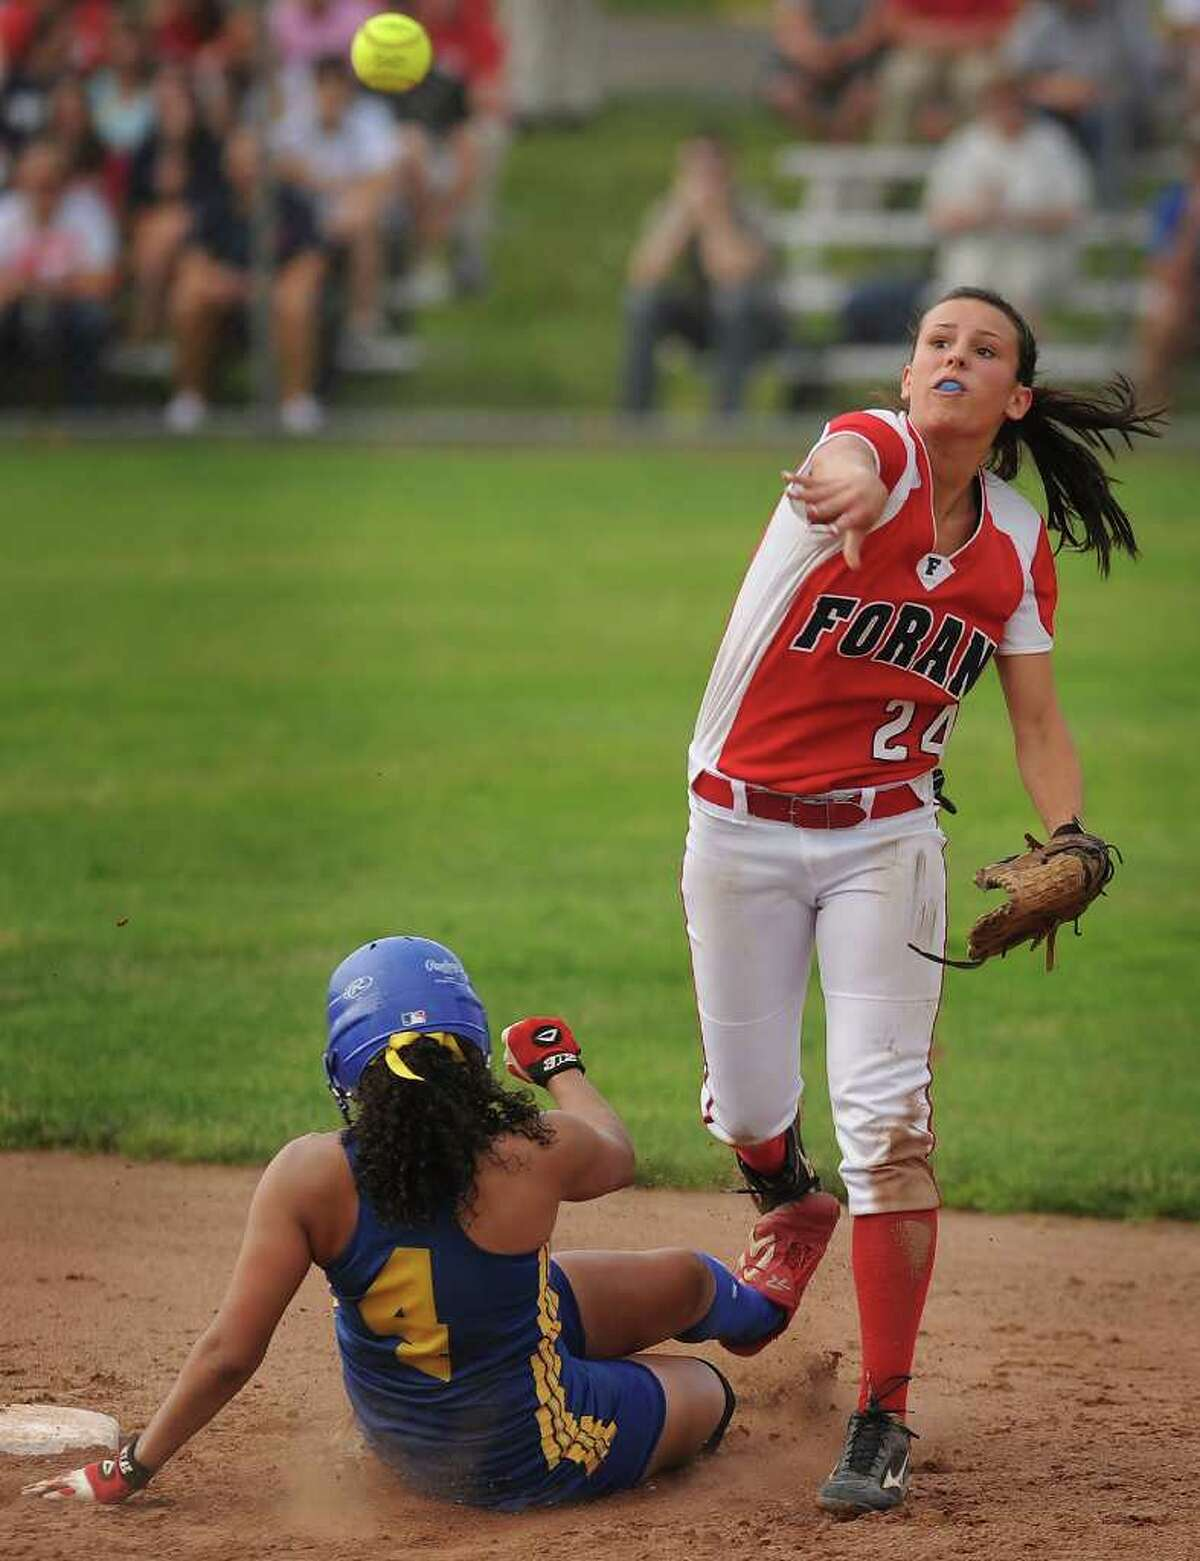 Foran shortstop Brooke Phelan turns an inning ending double play over Bacon Academy's Makaila Kowalsky in the sixth inning of the Lions' 3-0 victory in the Class L state softball championships at West Haven High School on Monday, June 13, 2011.